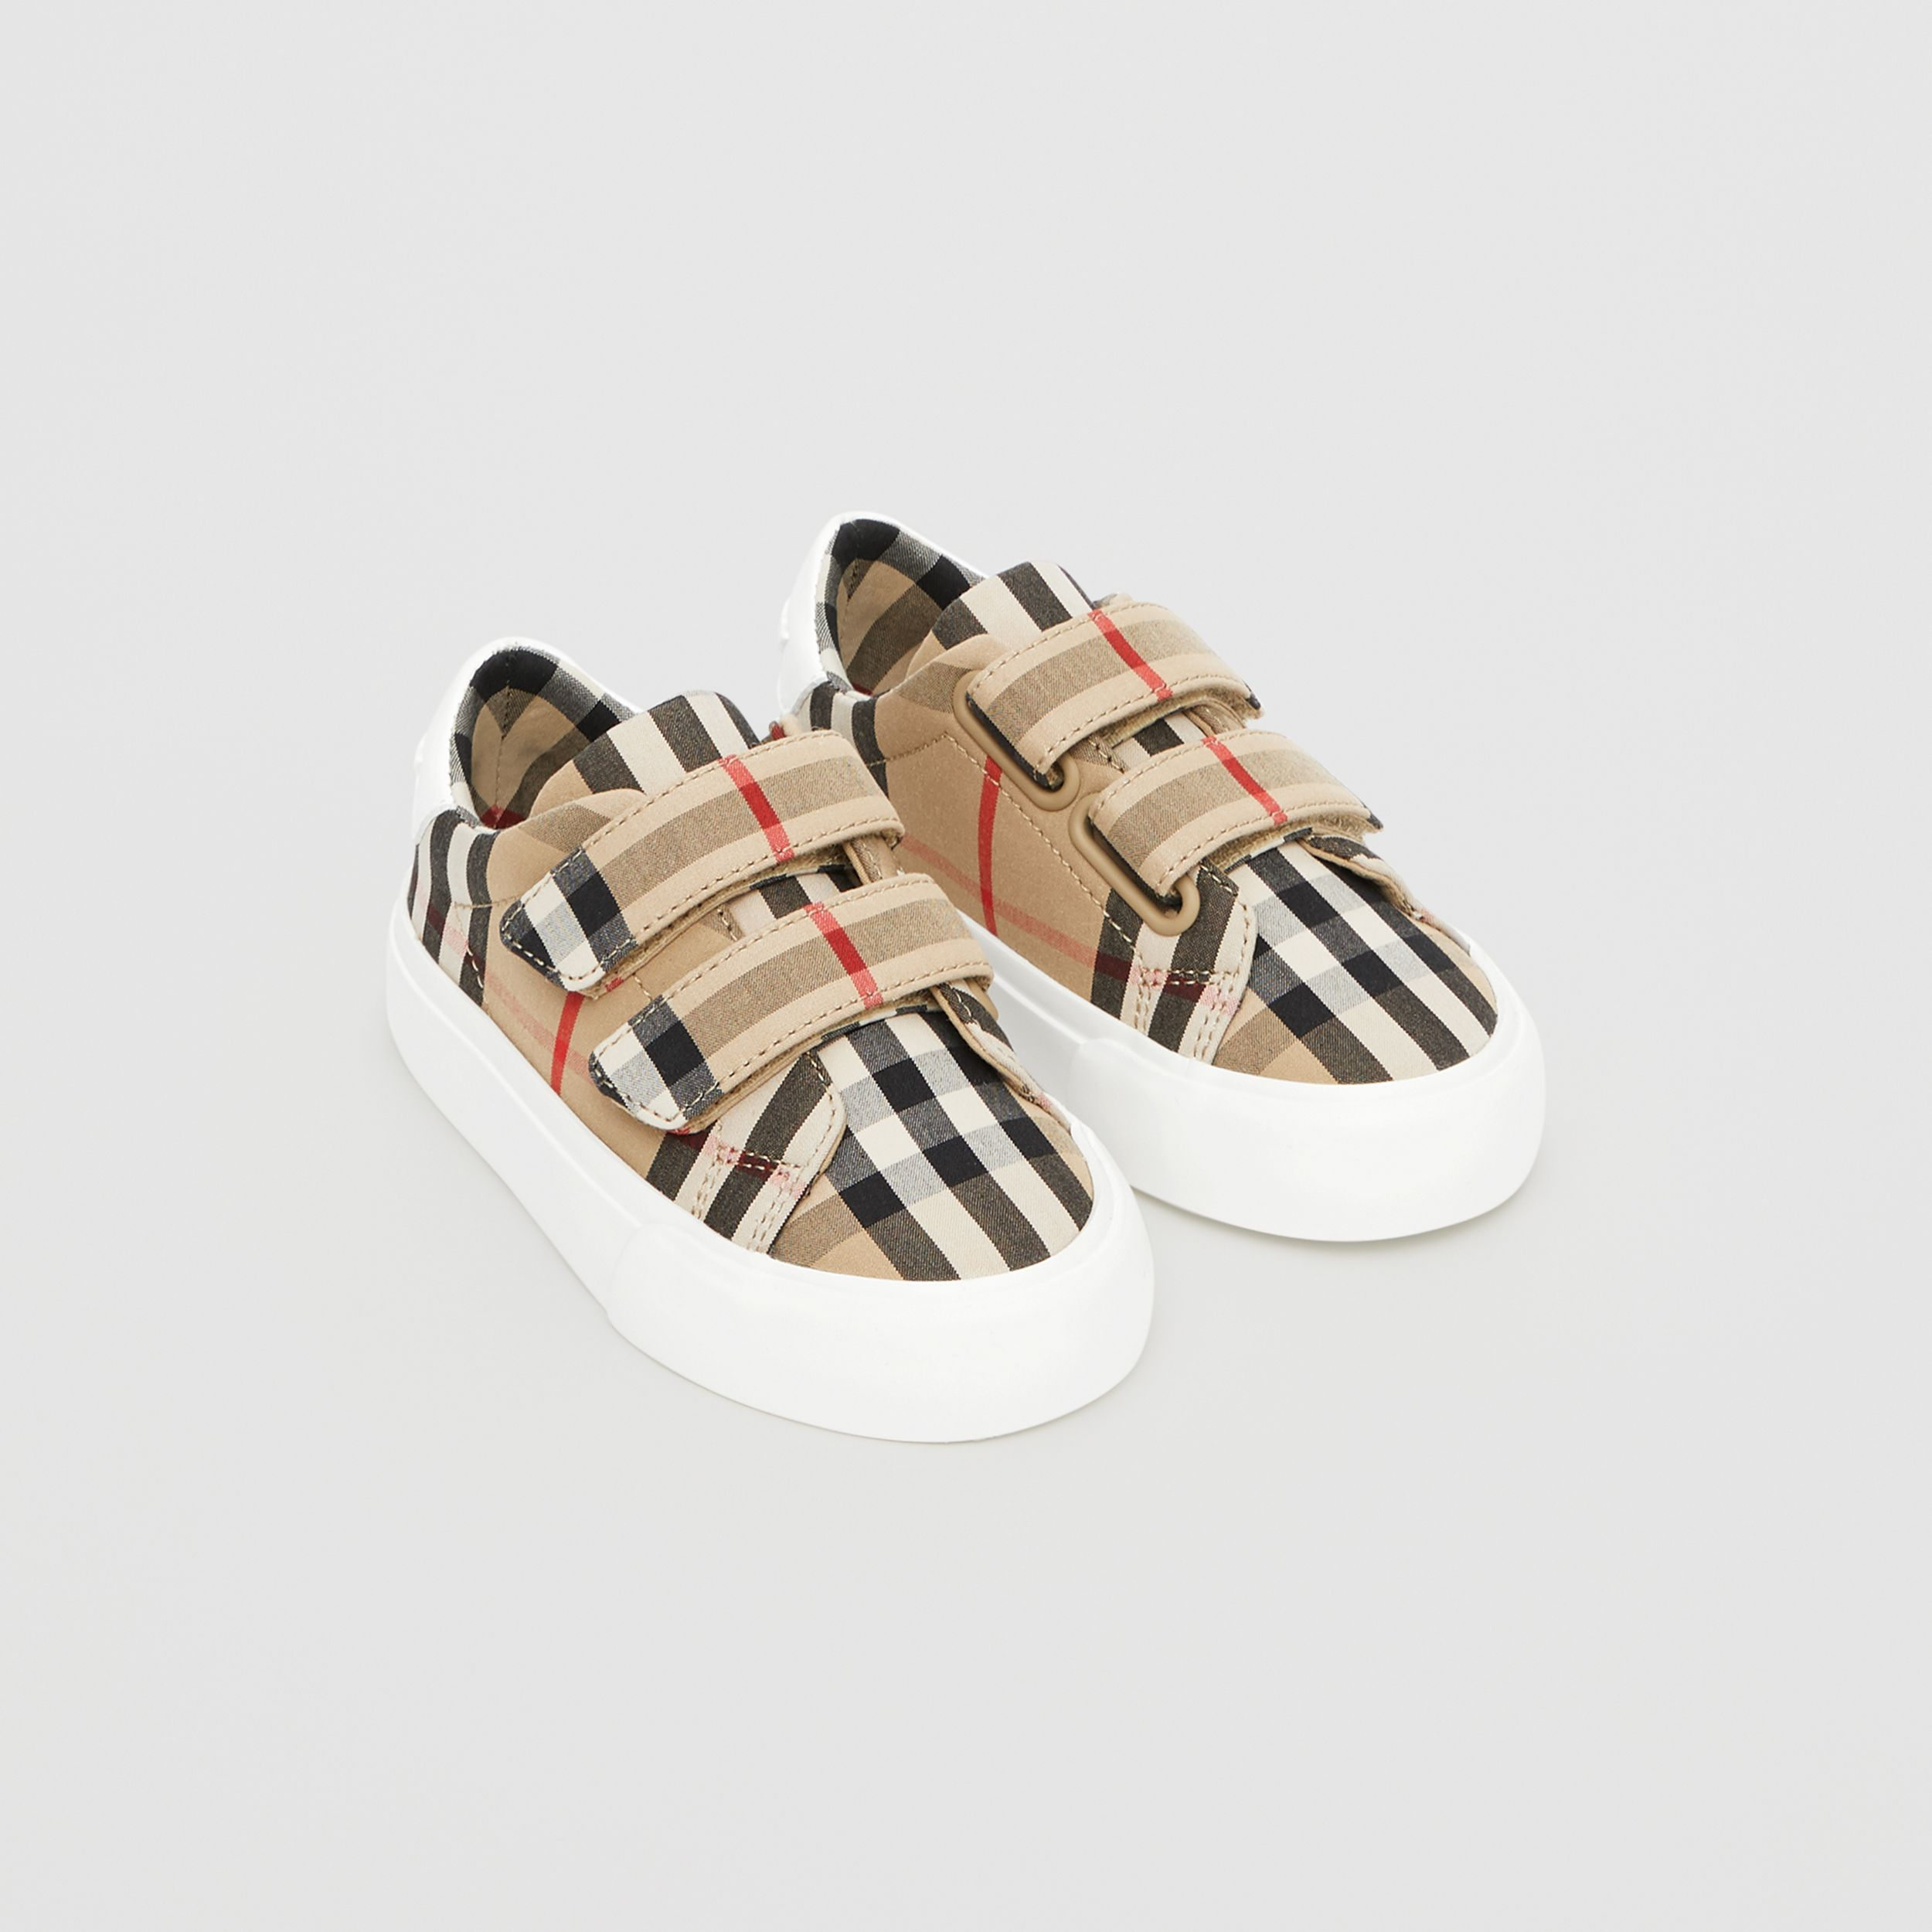 Vintage Check Cotton Sneakers in Archive Beige - Children | Burberry Australia - 1